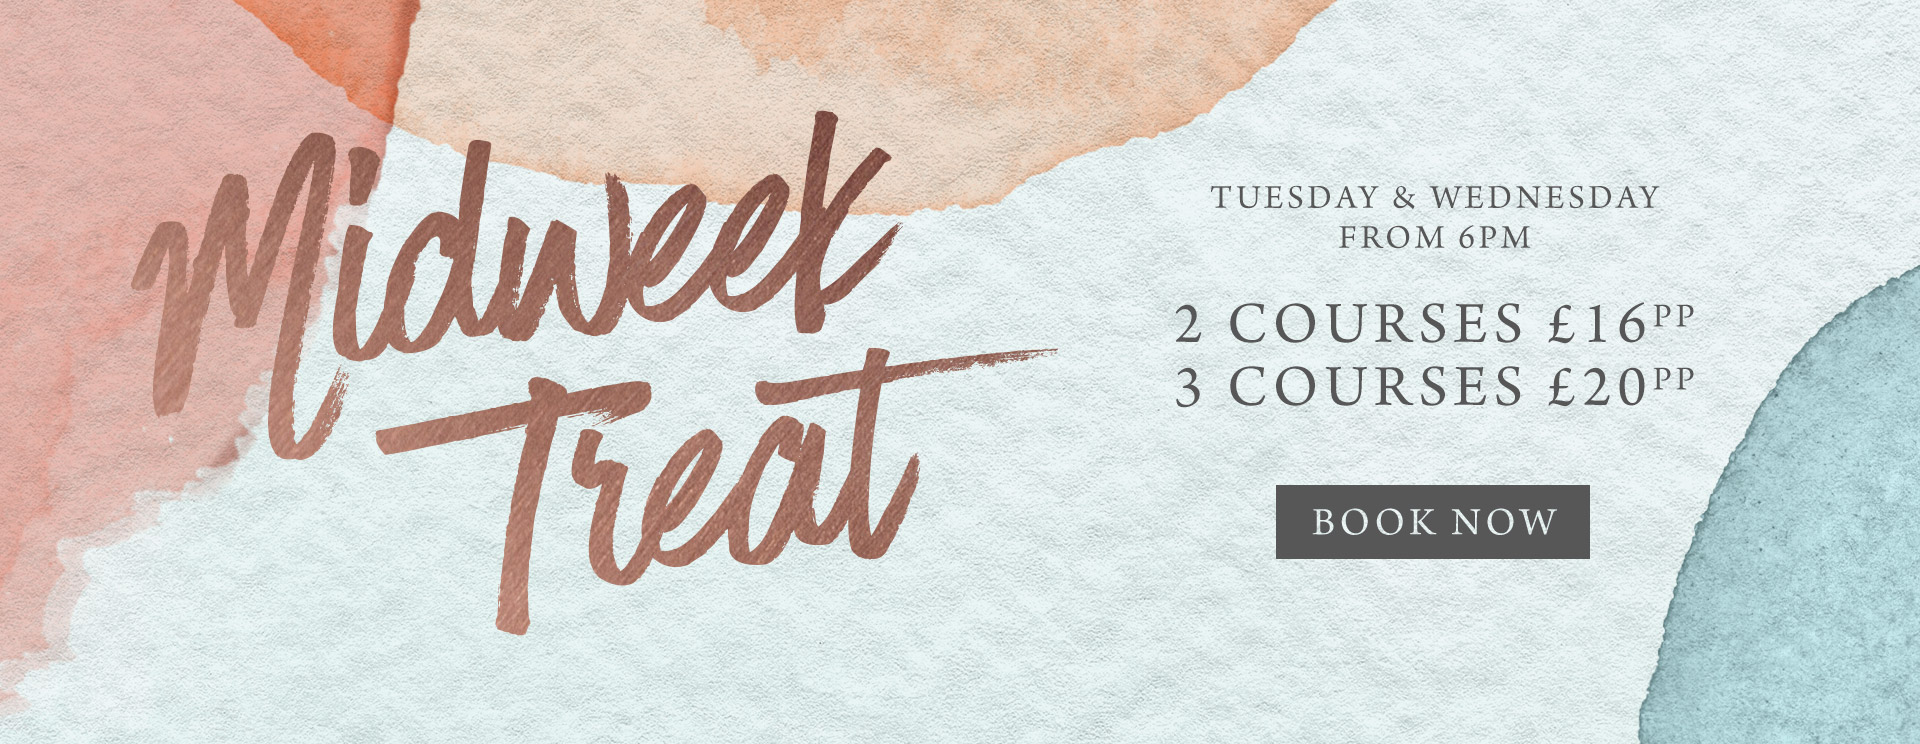 Midweek treat at The Old Bull & Bush - Book now